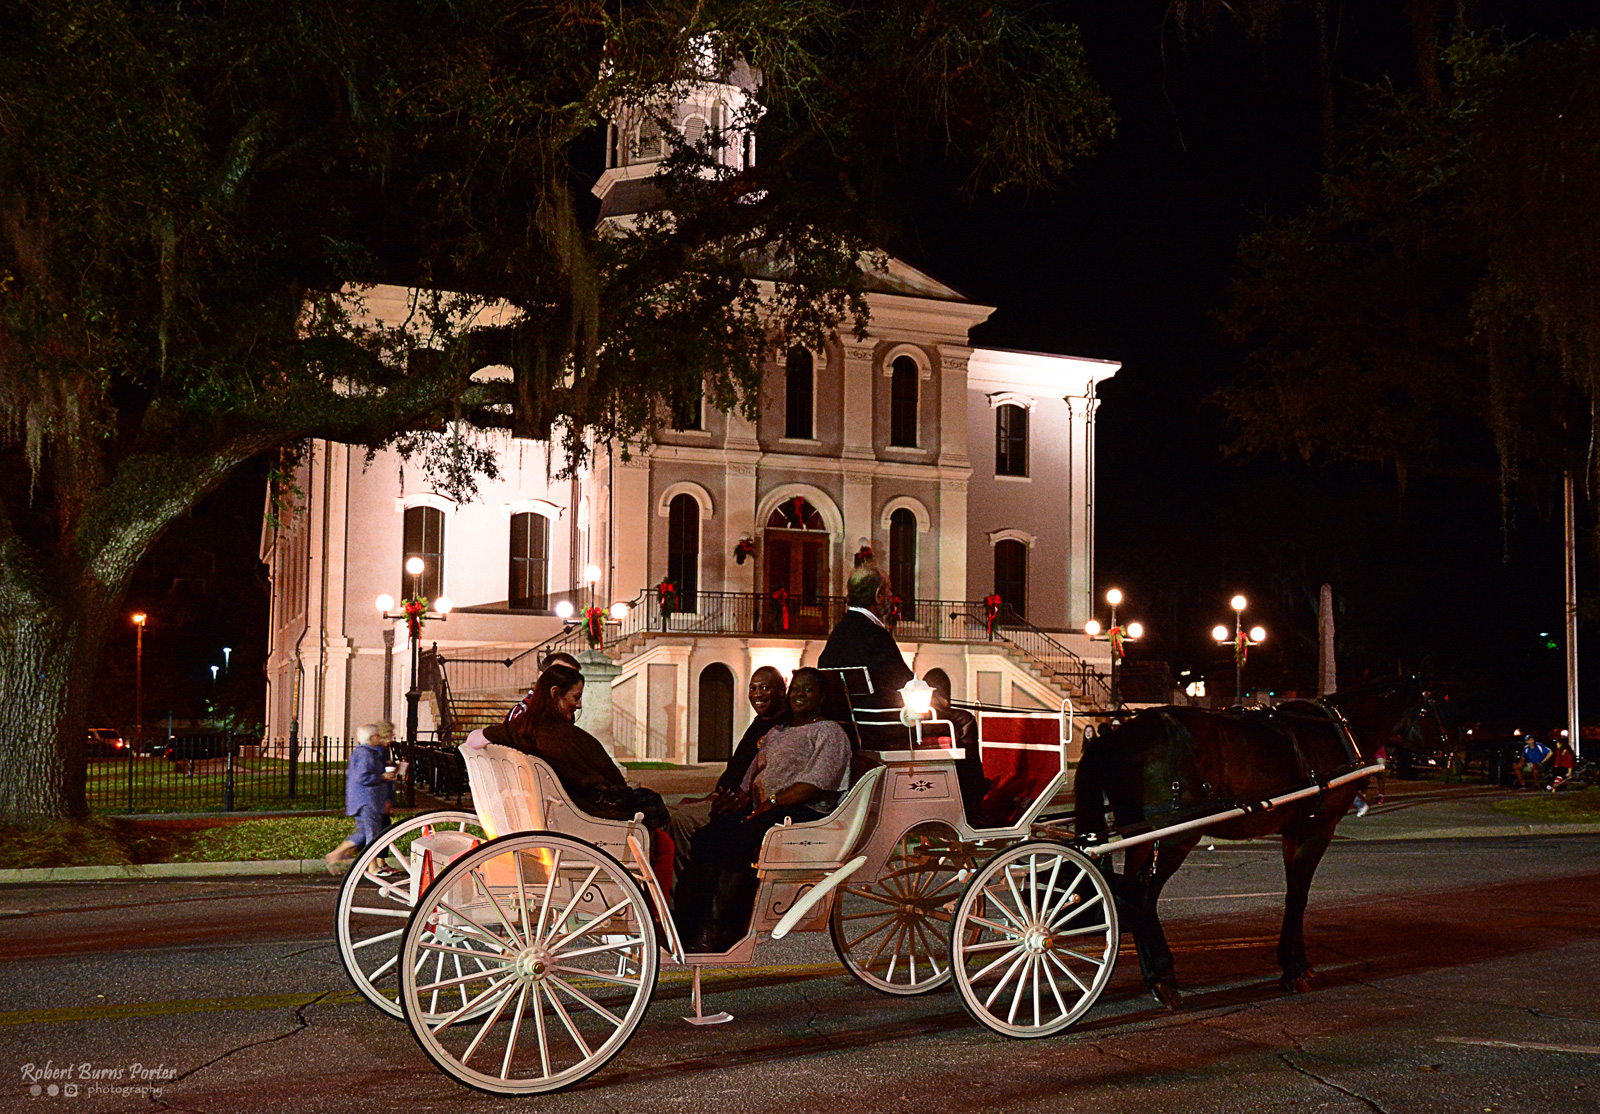 Carriage rides during Victorian Christmas in Thomasville, Georgia